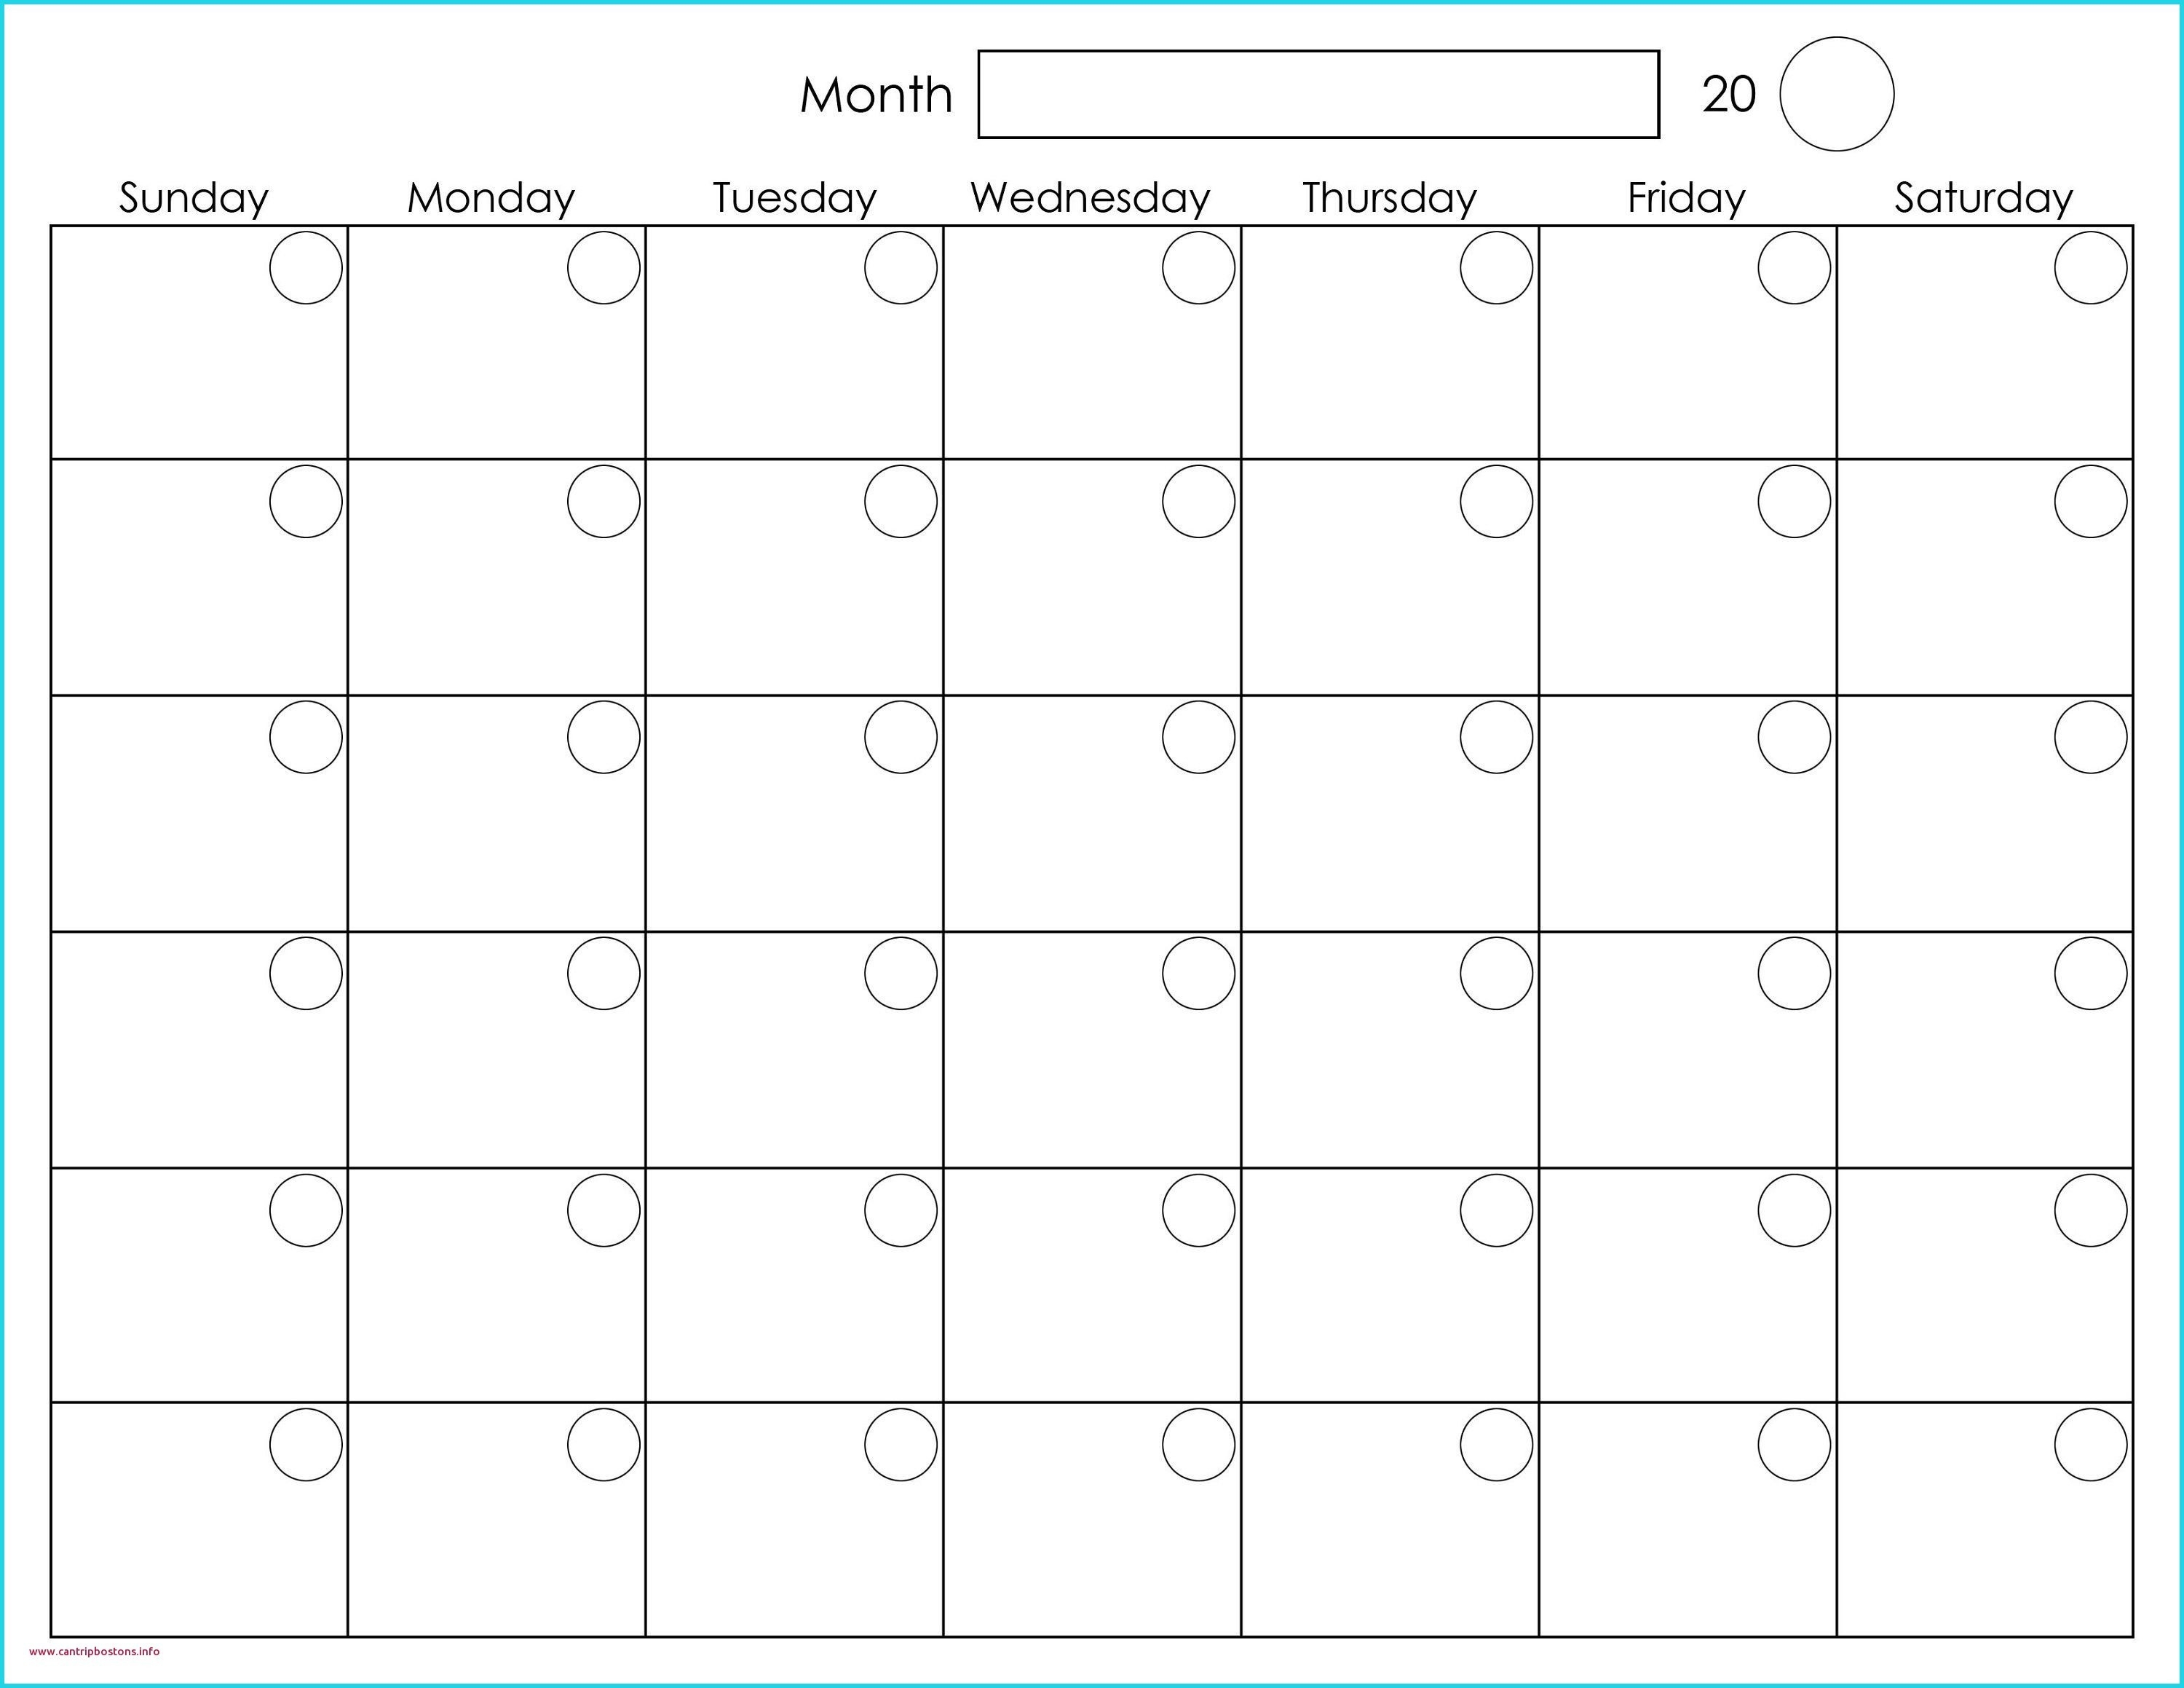 Month At A Glance Blank Calendar Template Lovely Printable-Month At A Glance Blank Calendar Template